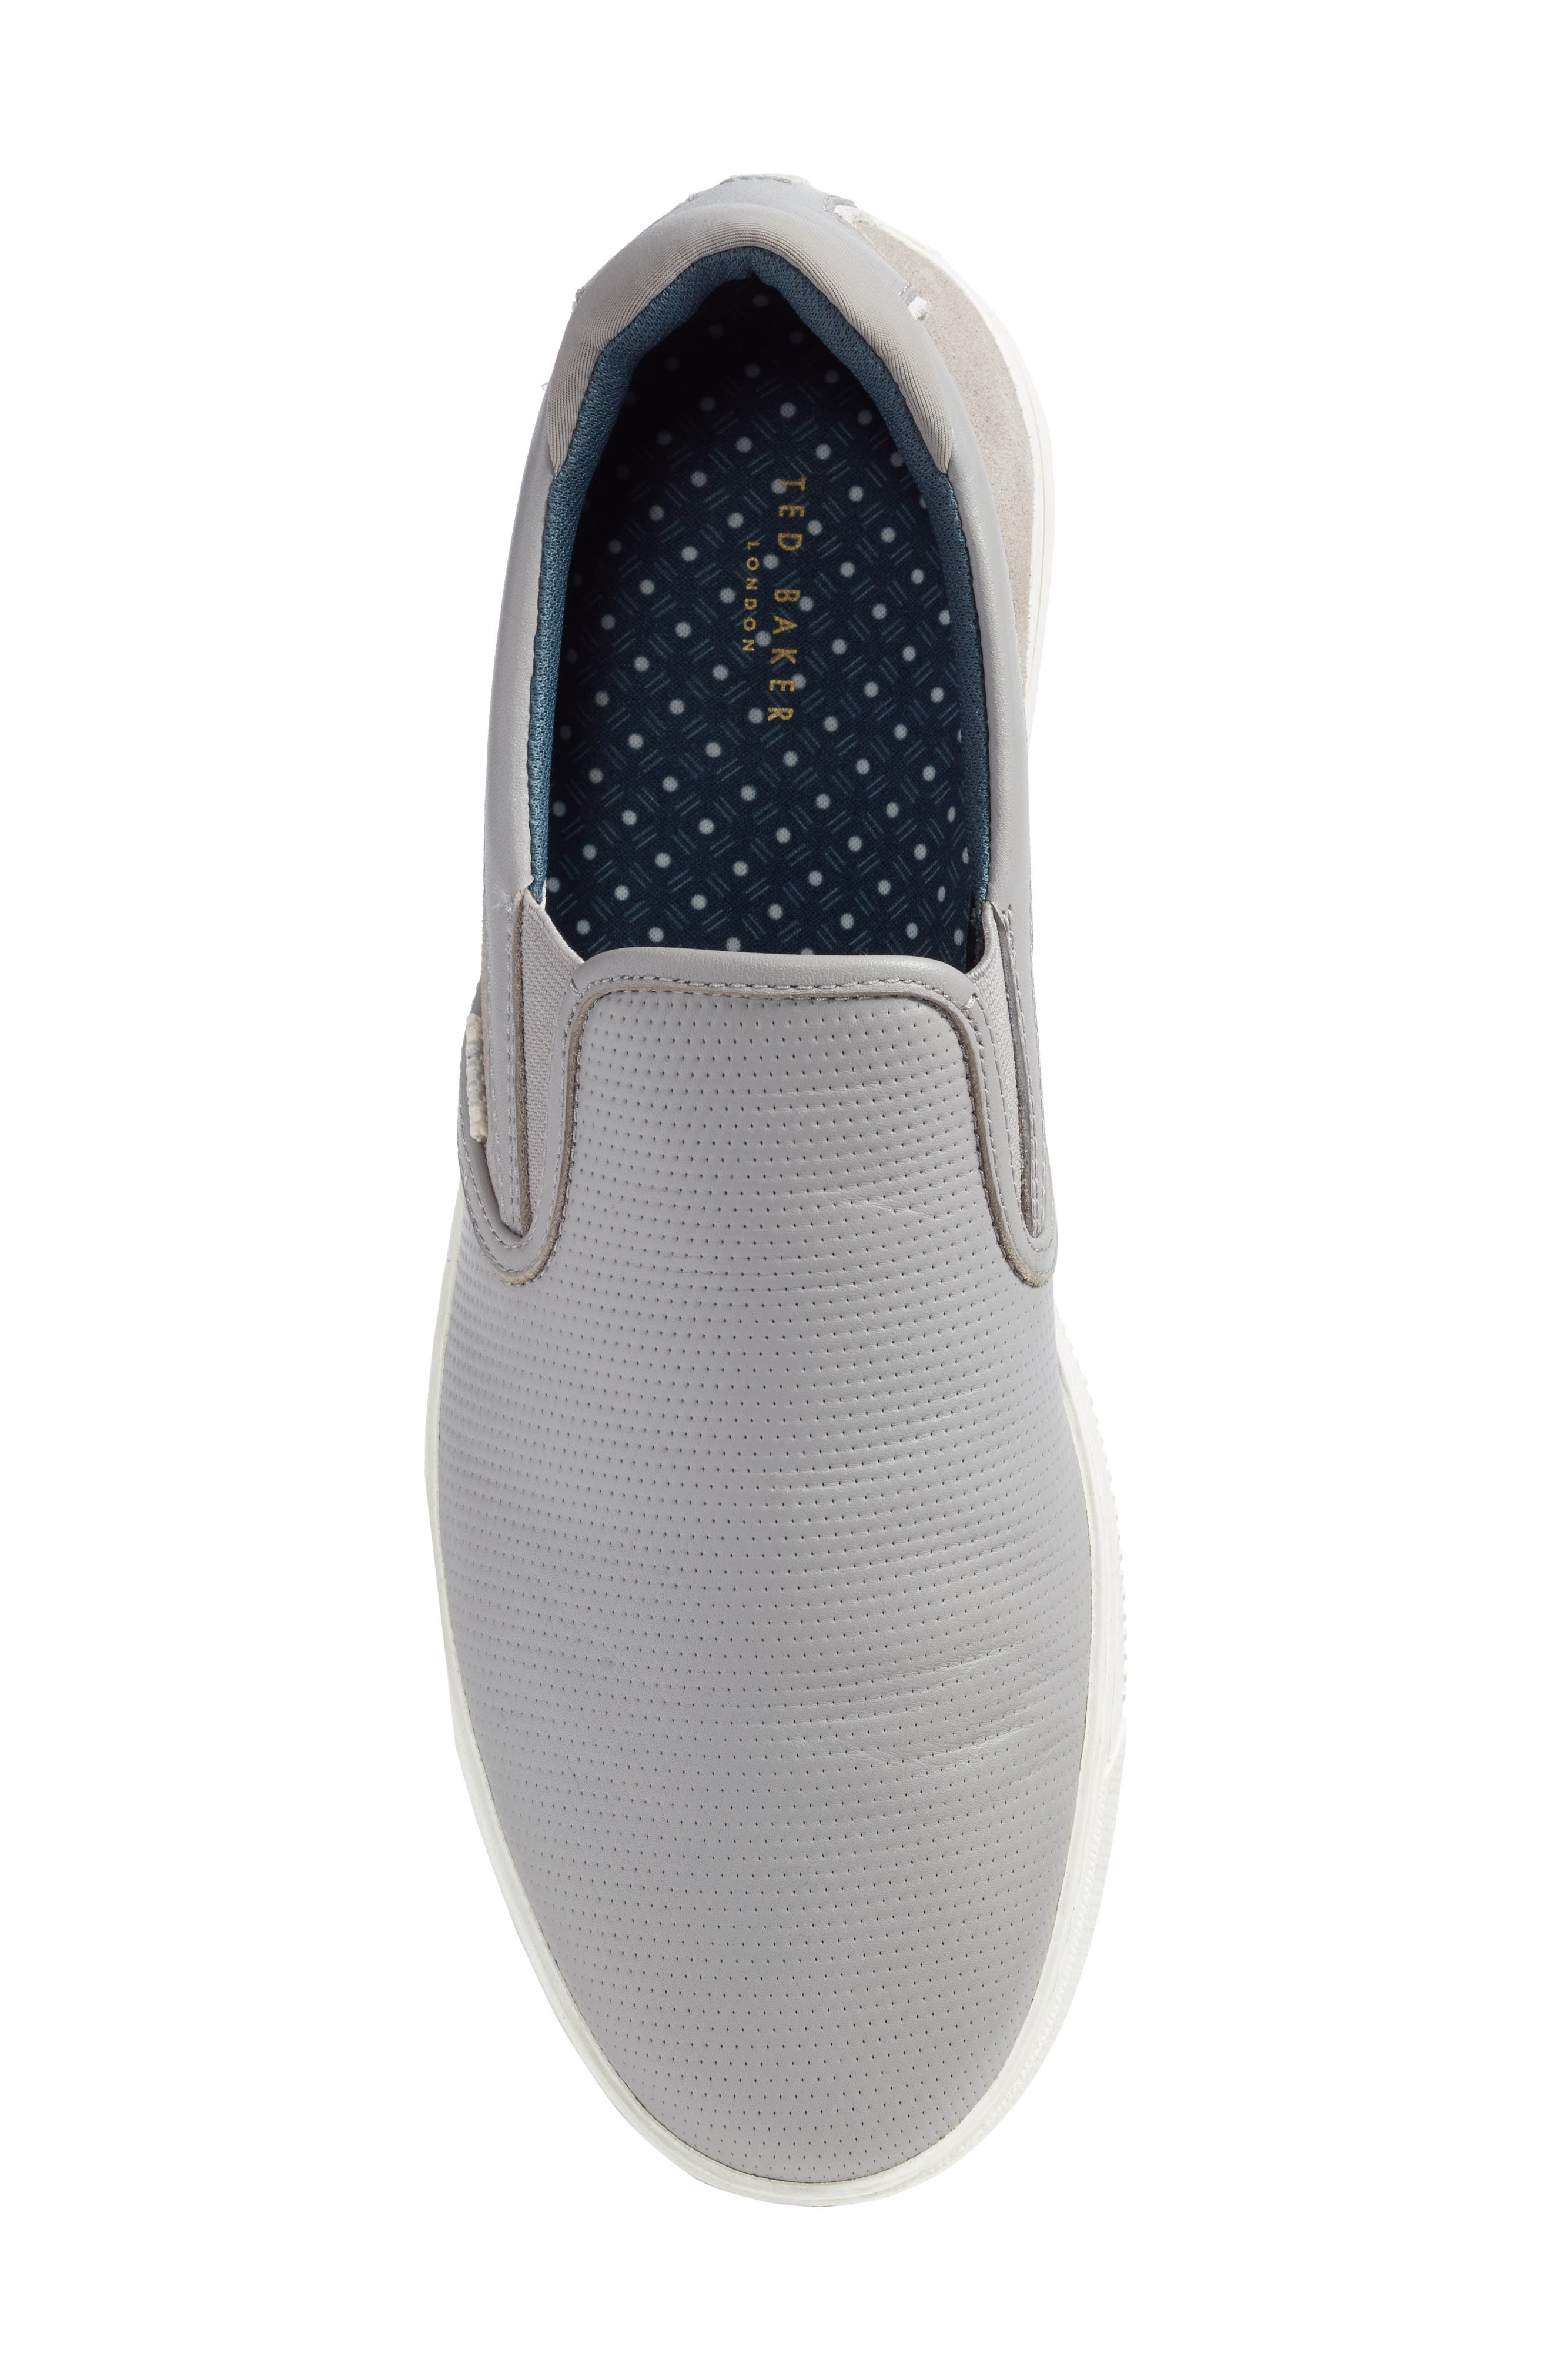 Patroy Perforated Slip-On Sneaker,                             Alternate thumbnail 5, color,                             LIGHT GREY LEATHER